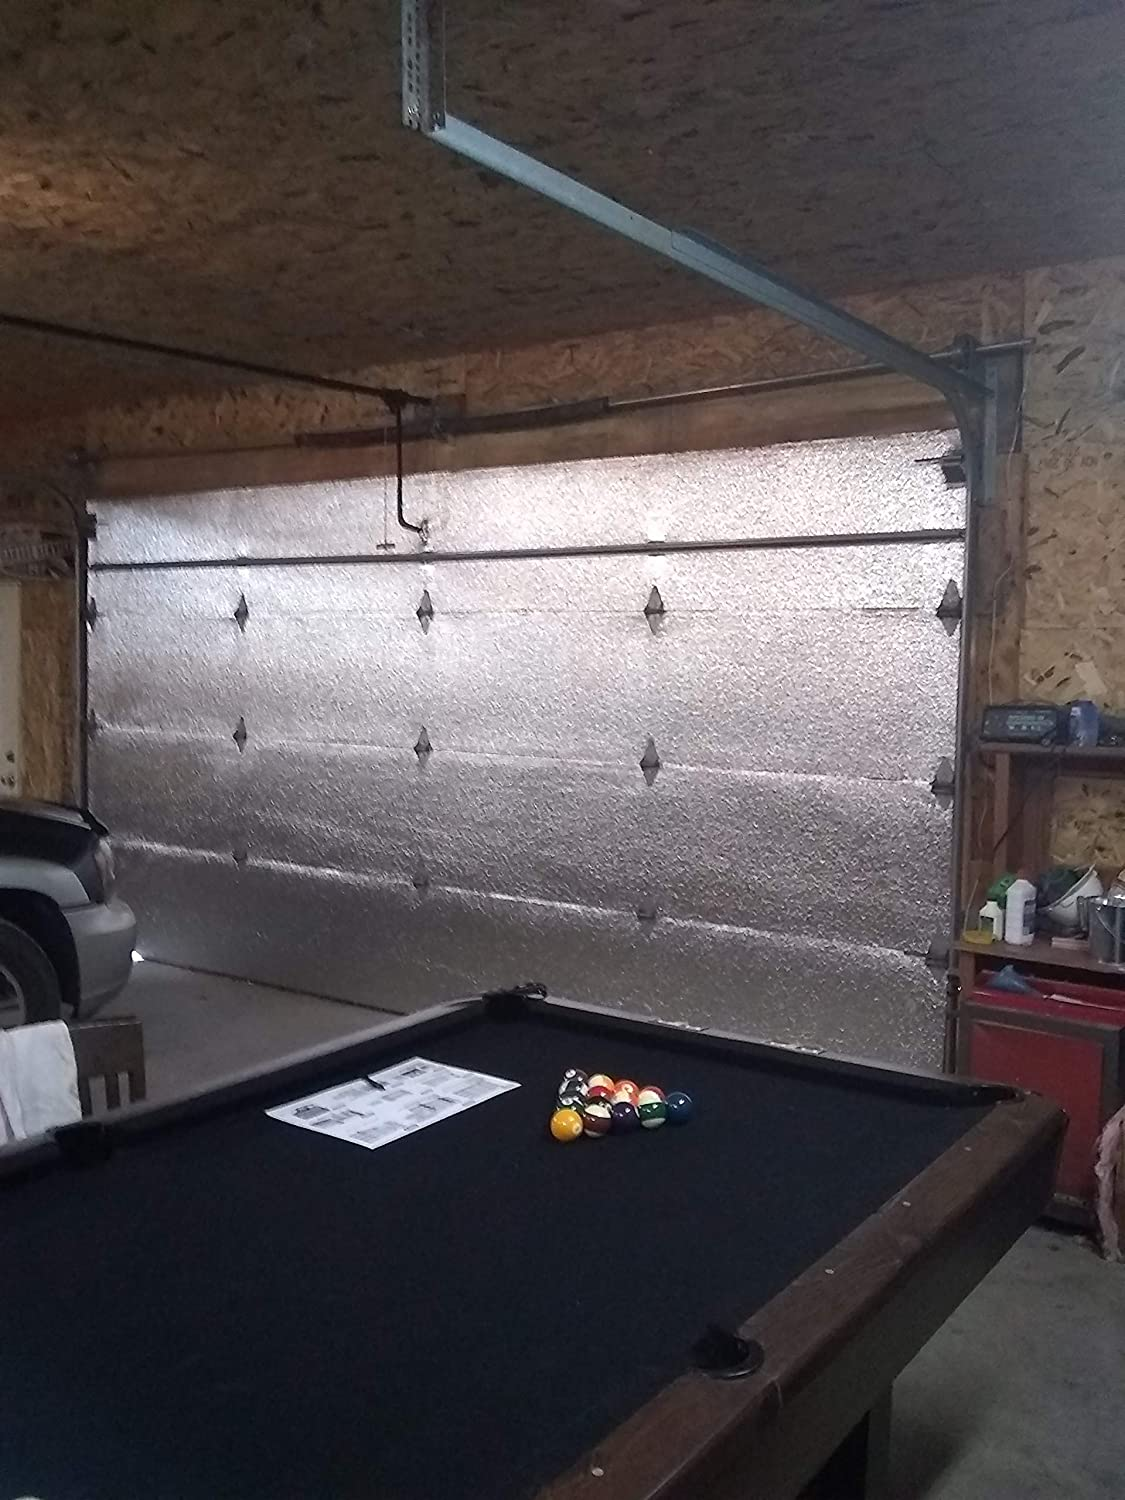 US Energy Products Two Car Garage Door (16'x7') & (16'x8') Insulation Kit: (Reflective Foil Poly-Air Core Insulation, Razor Knife, Squeegee, New Improved Double Sided Adhesive Tape.